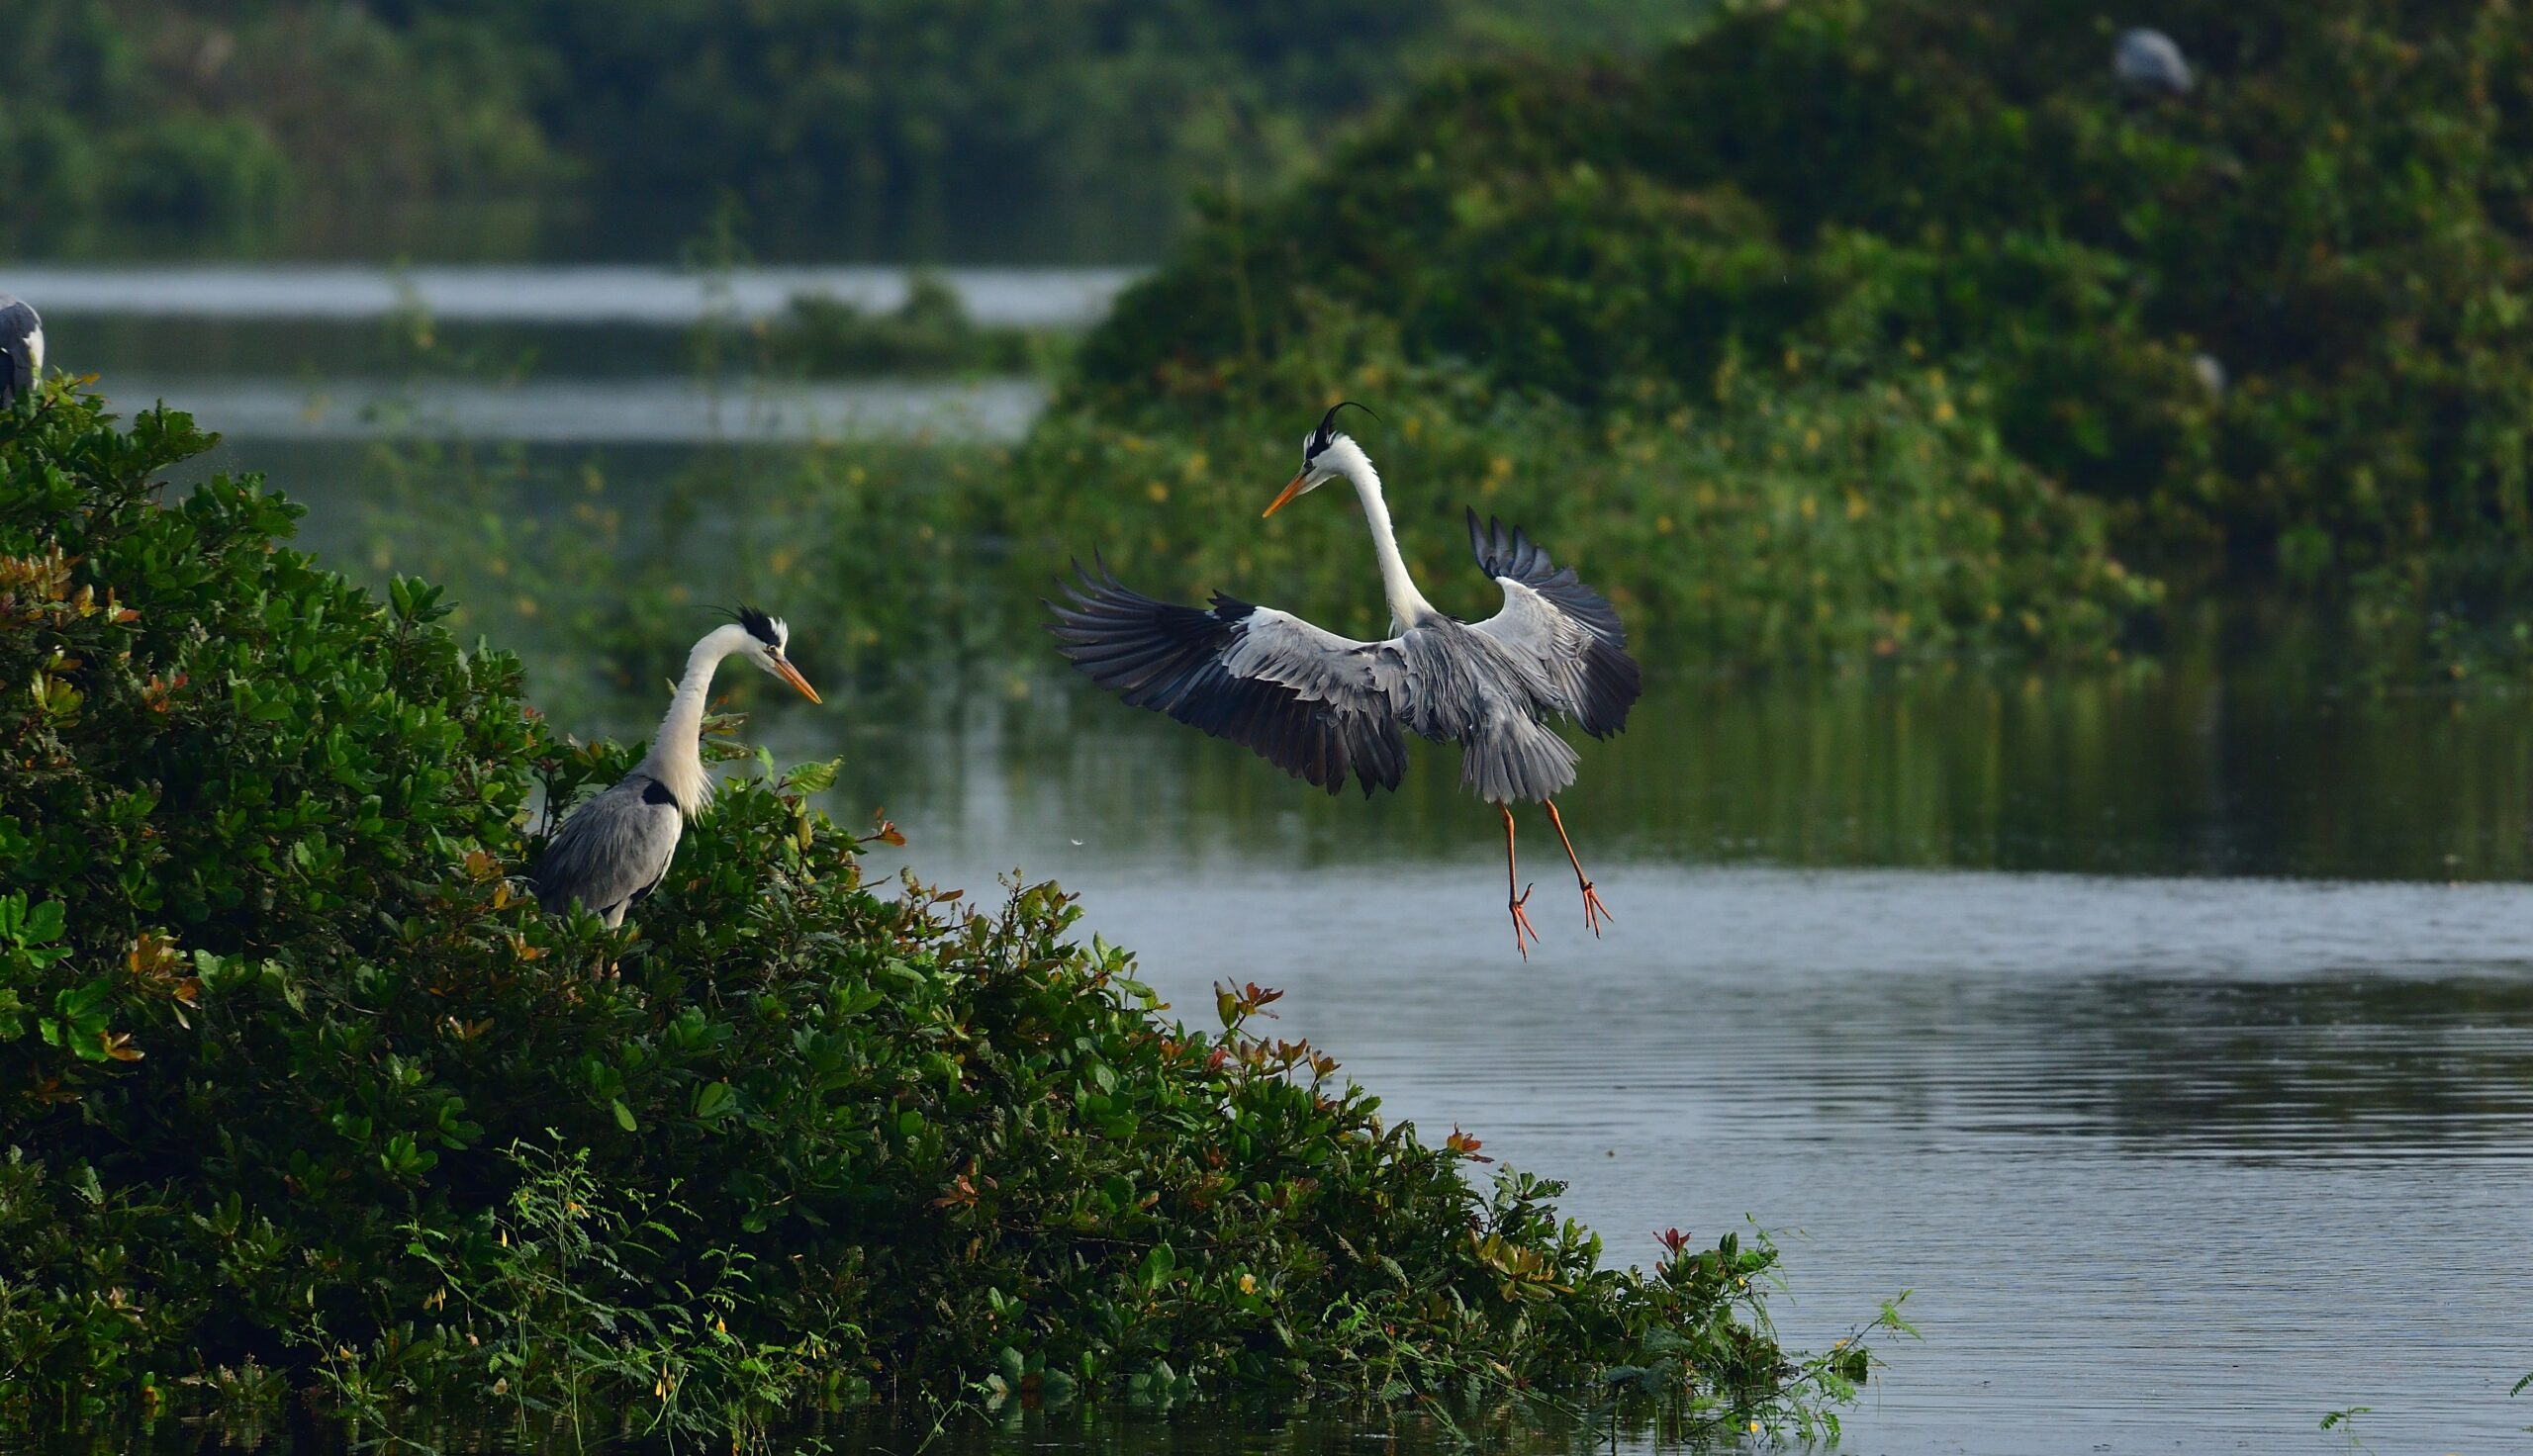 Delayed Winter Monsoon Gives Anxious Moments to Tamil Nadu Birdwatchers